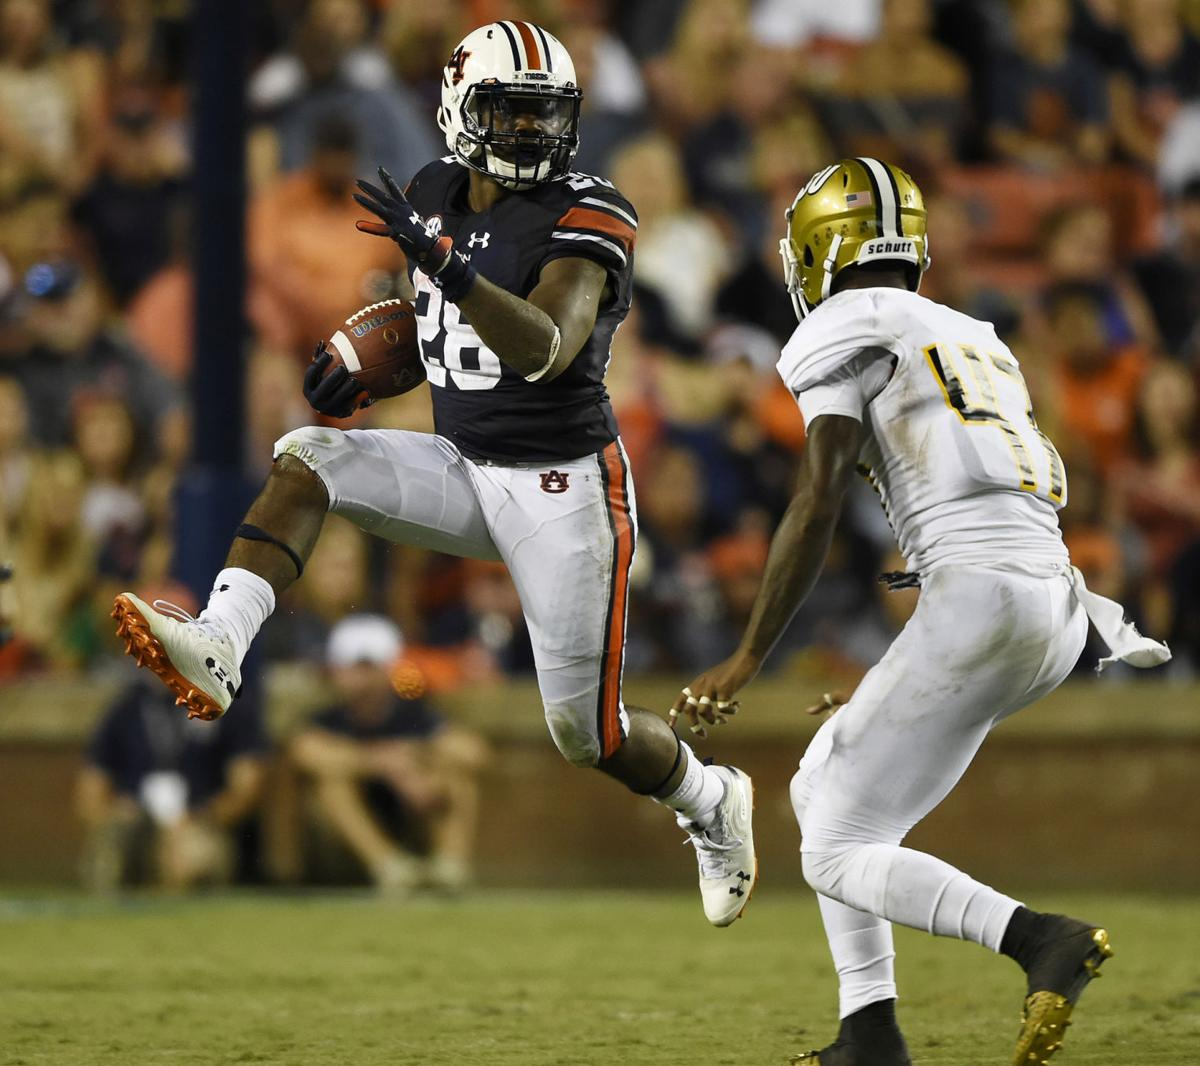 Another 'crazy' Auburn-LSU game on tap for Saturday